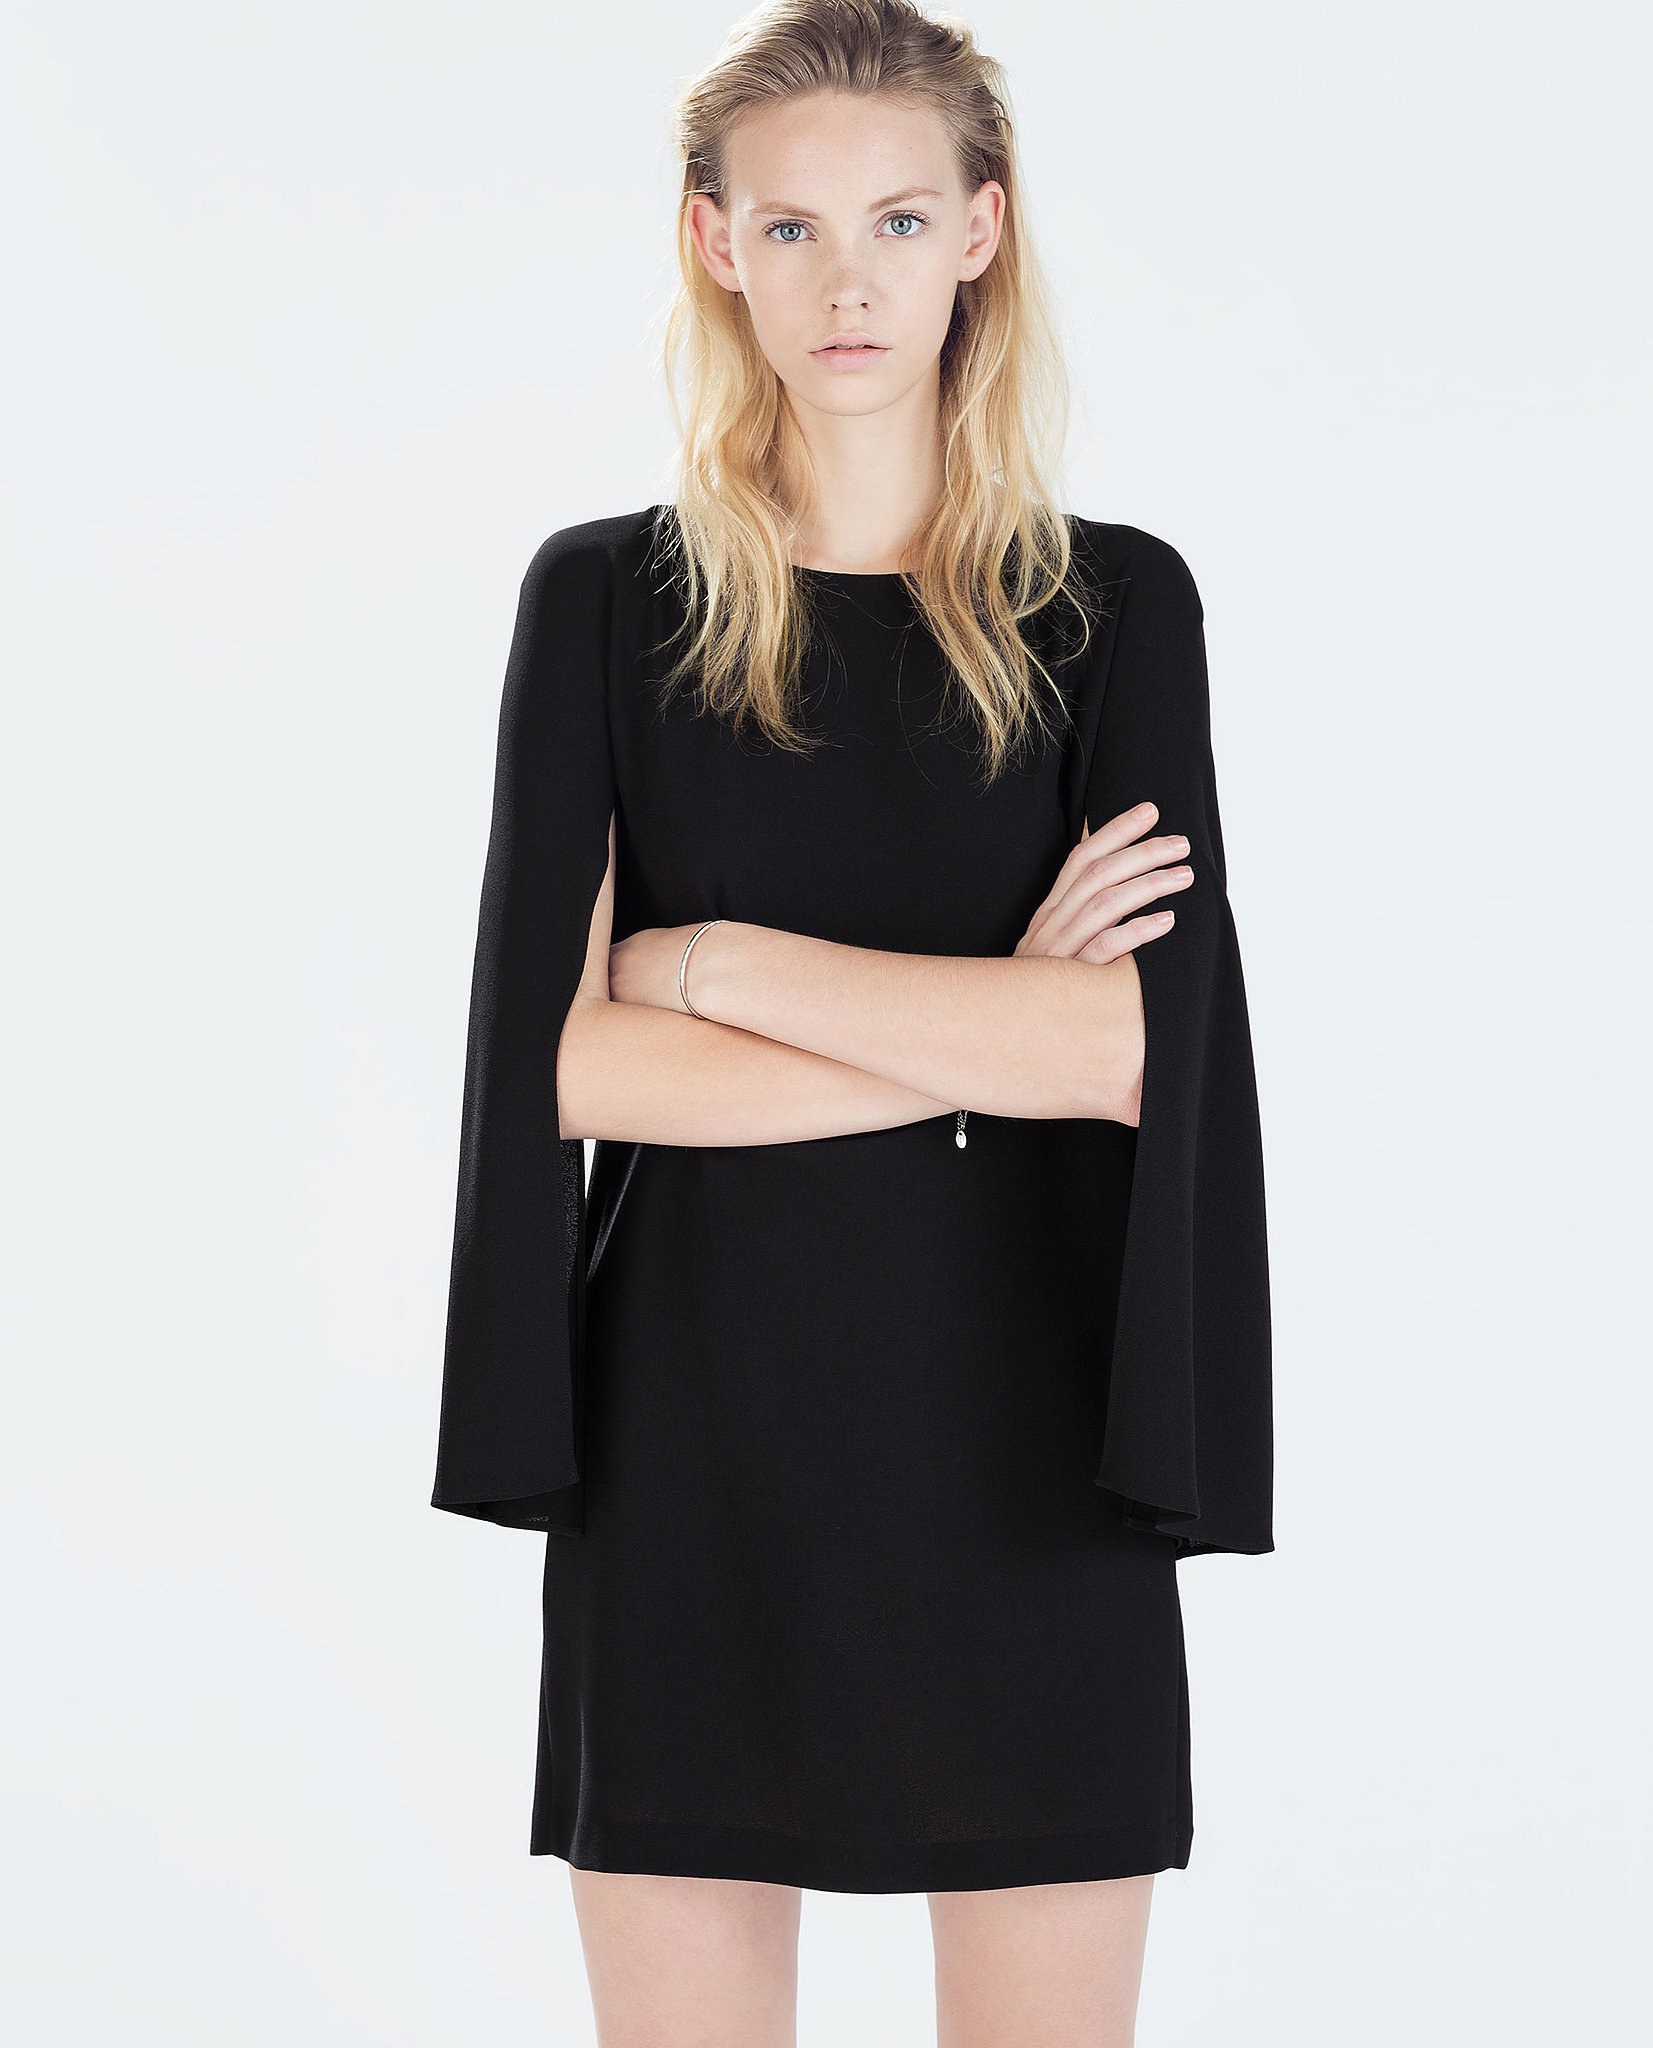 zara cape sleeved straight dress the dress trend all the celebrities are trying popsugar fashion. Black Bedroom Furniture Sets. Home Design Ideas